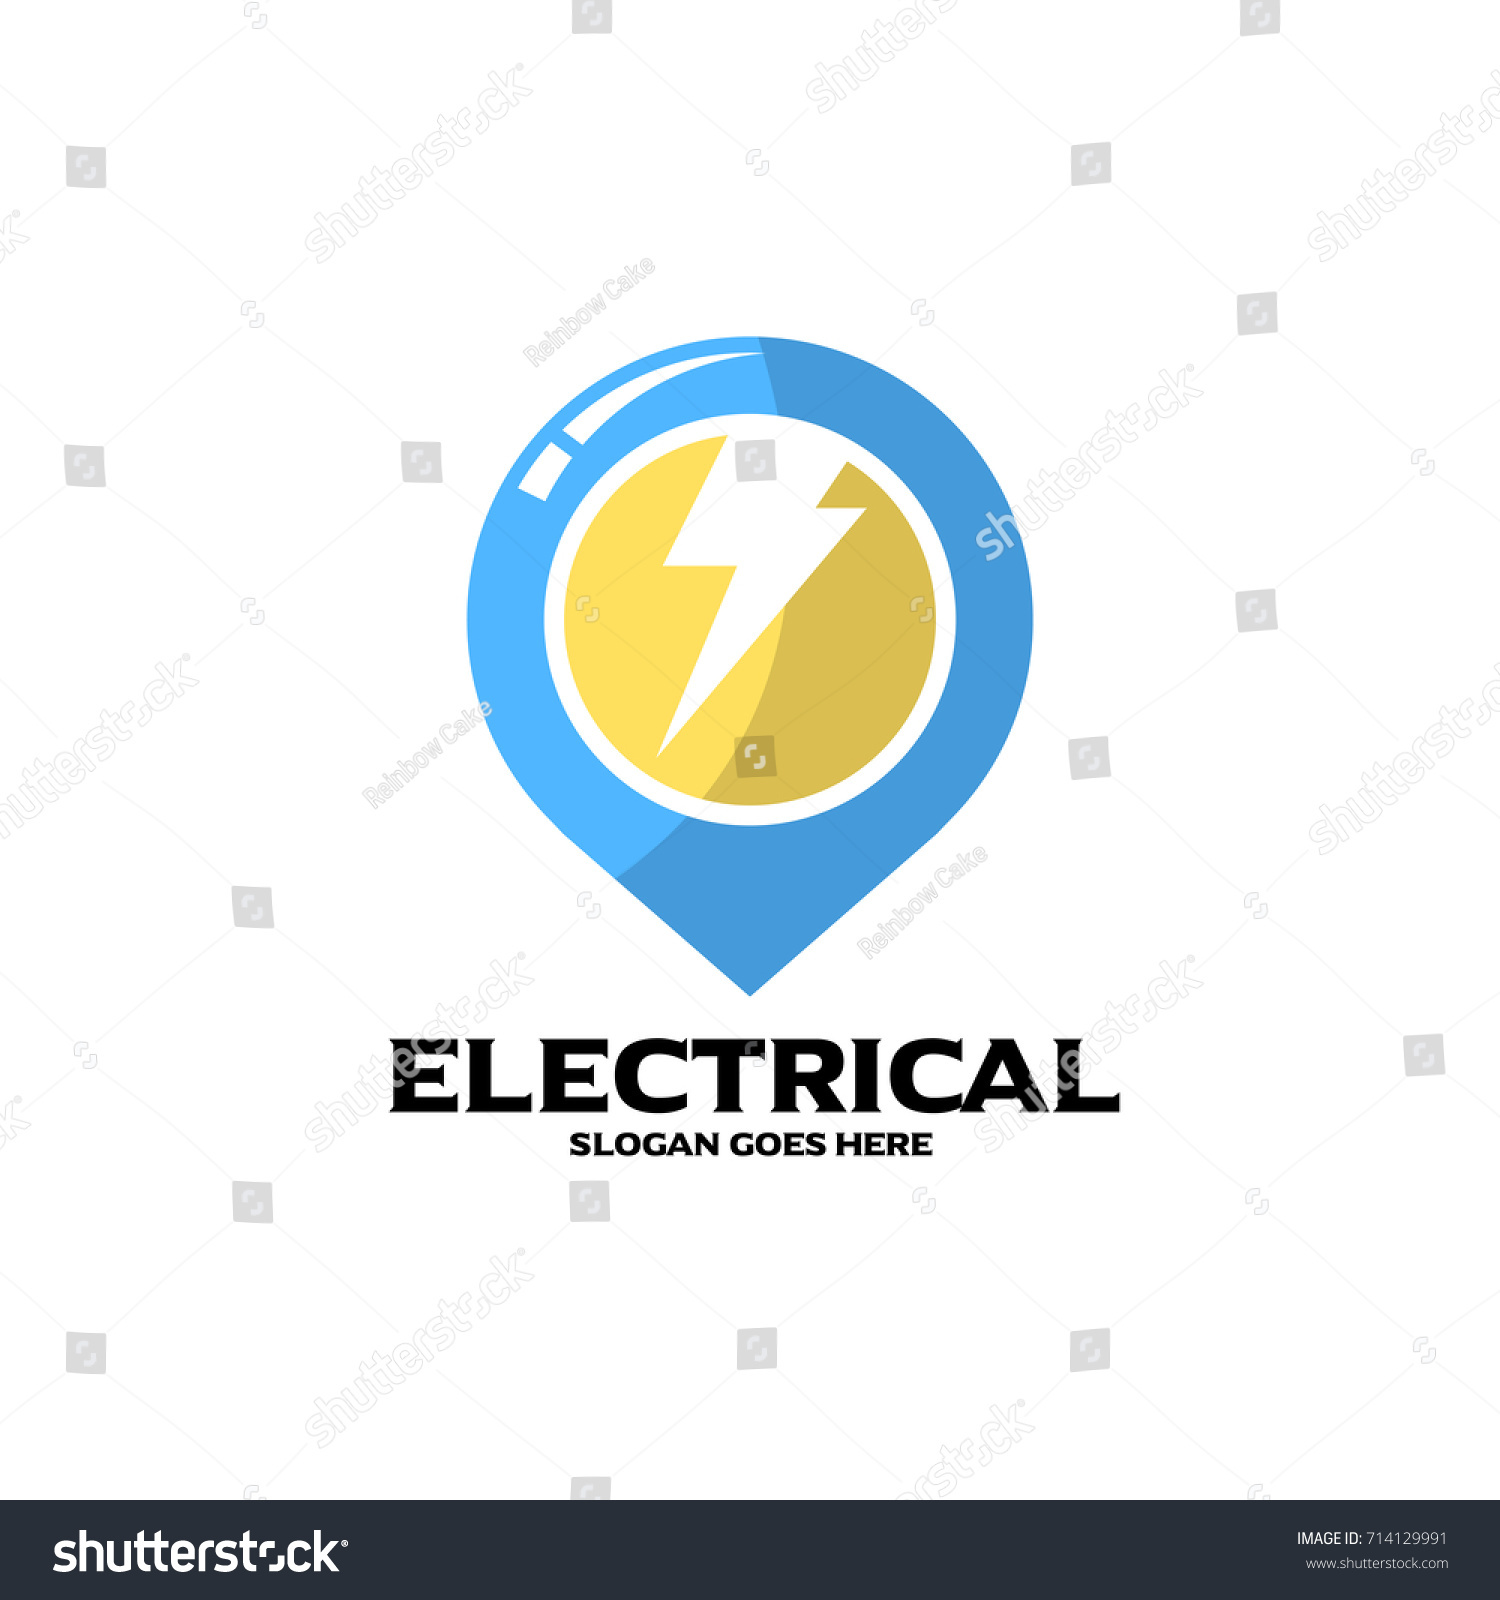 Electrical logo electrical mechanical business company stock electrical logo electrical and mechanical business company good for name card and branding vector magicingreecefo Images